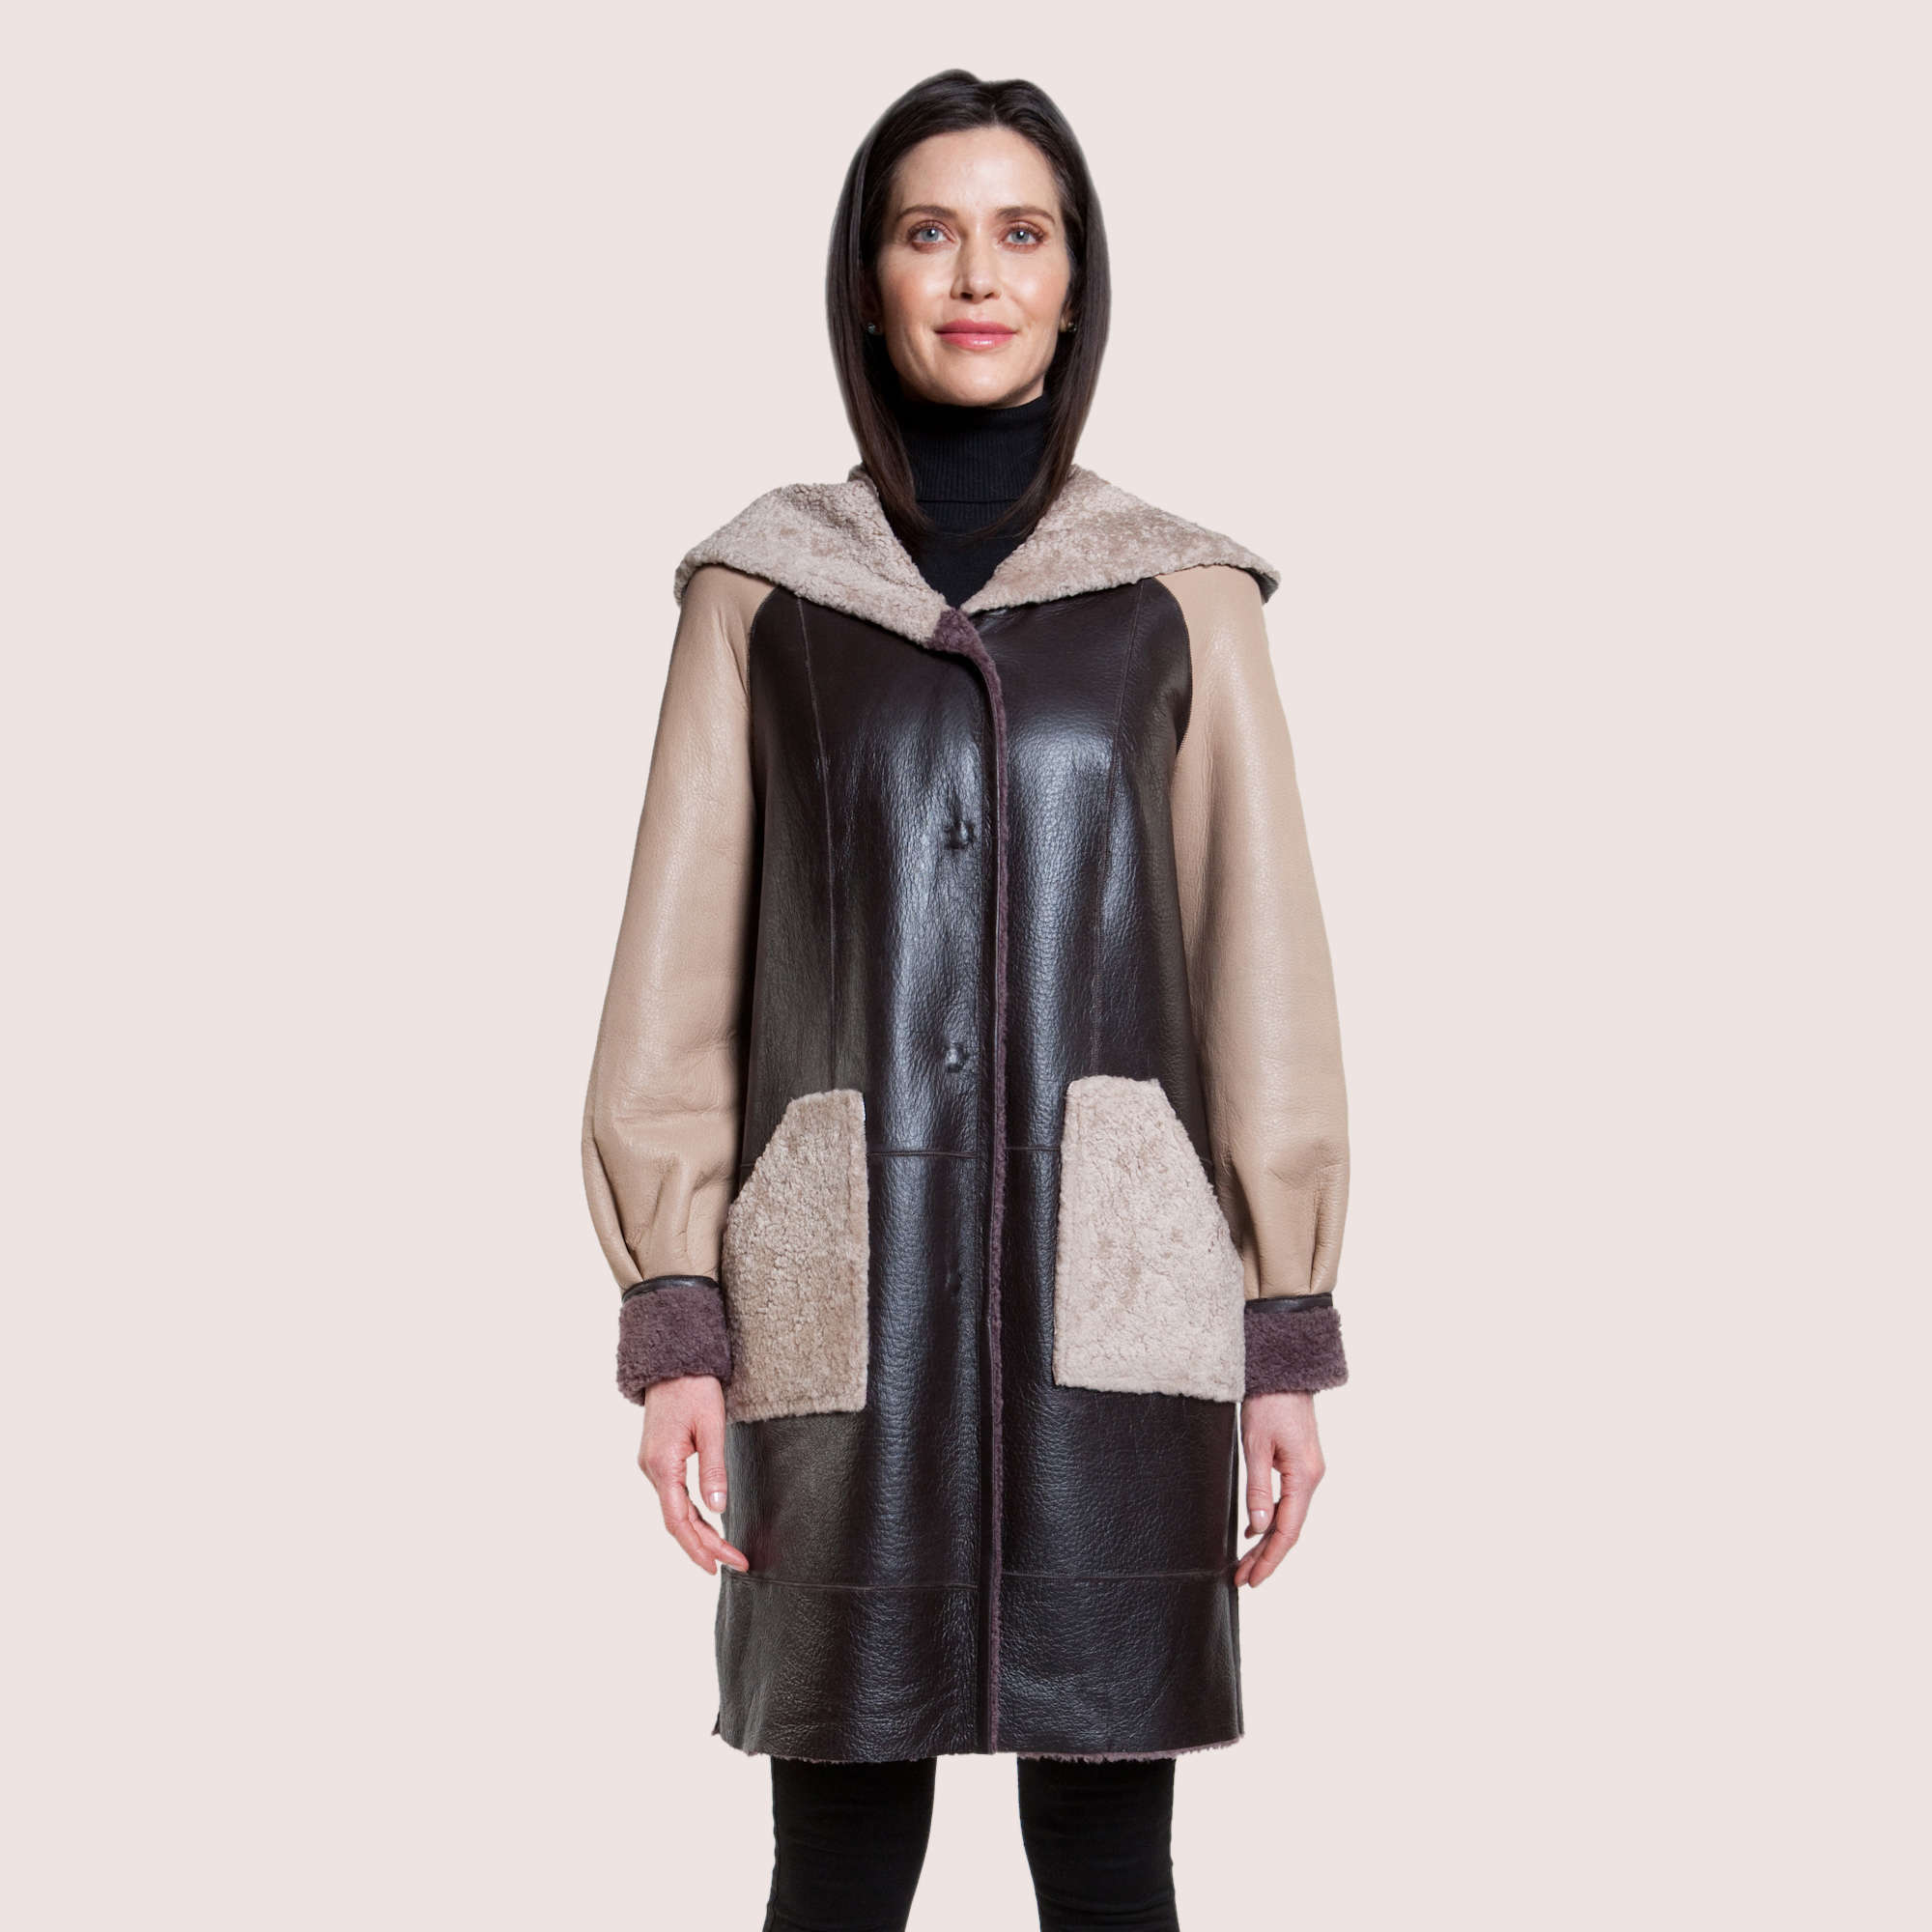 Judith Reversible Shearling Coat